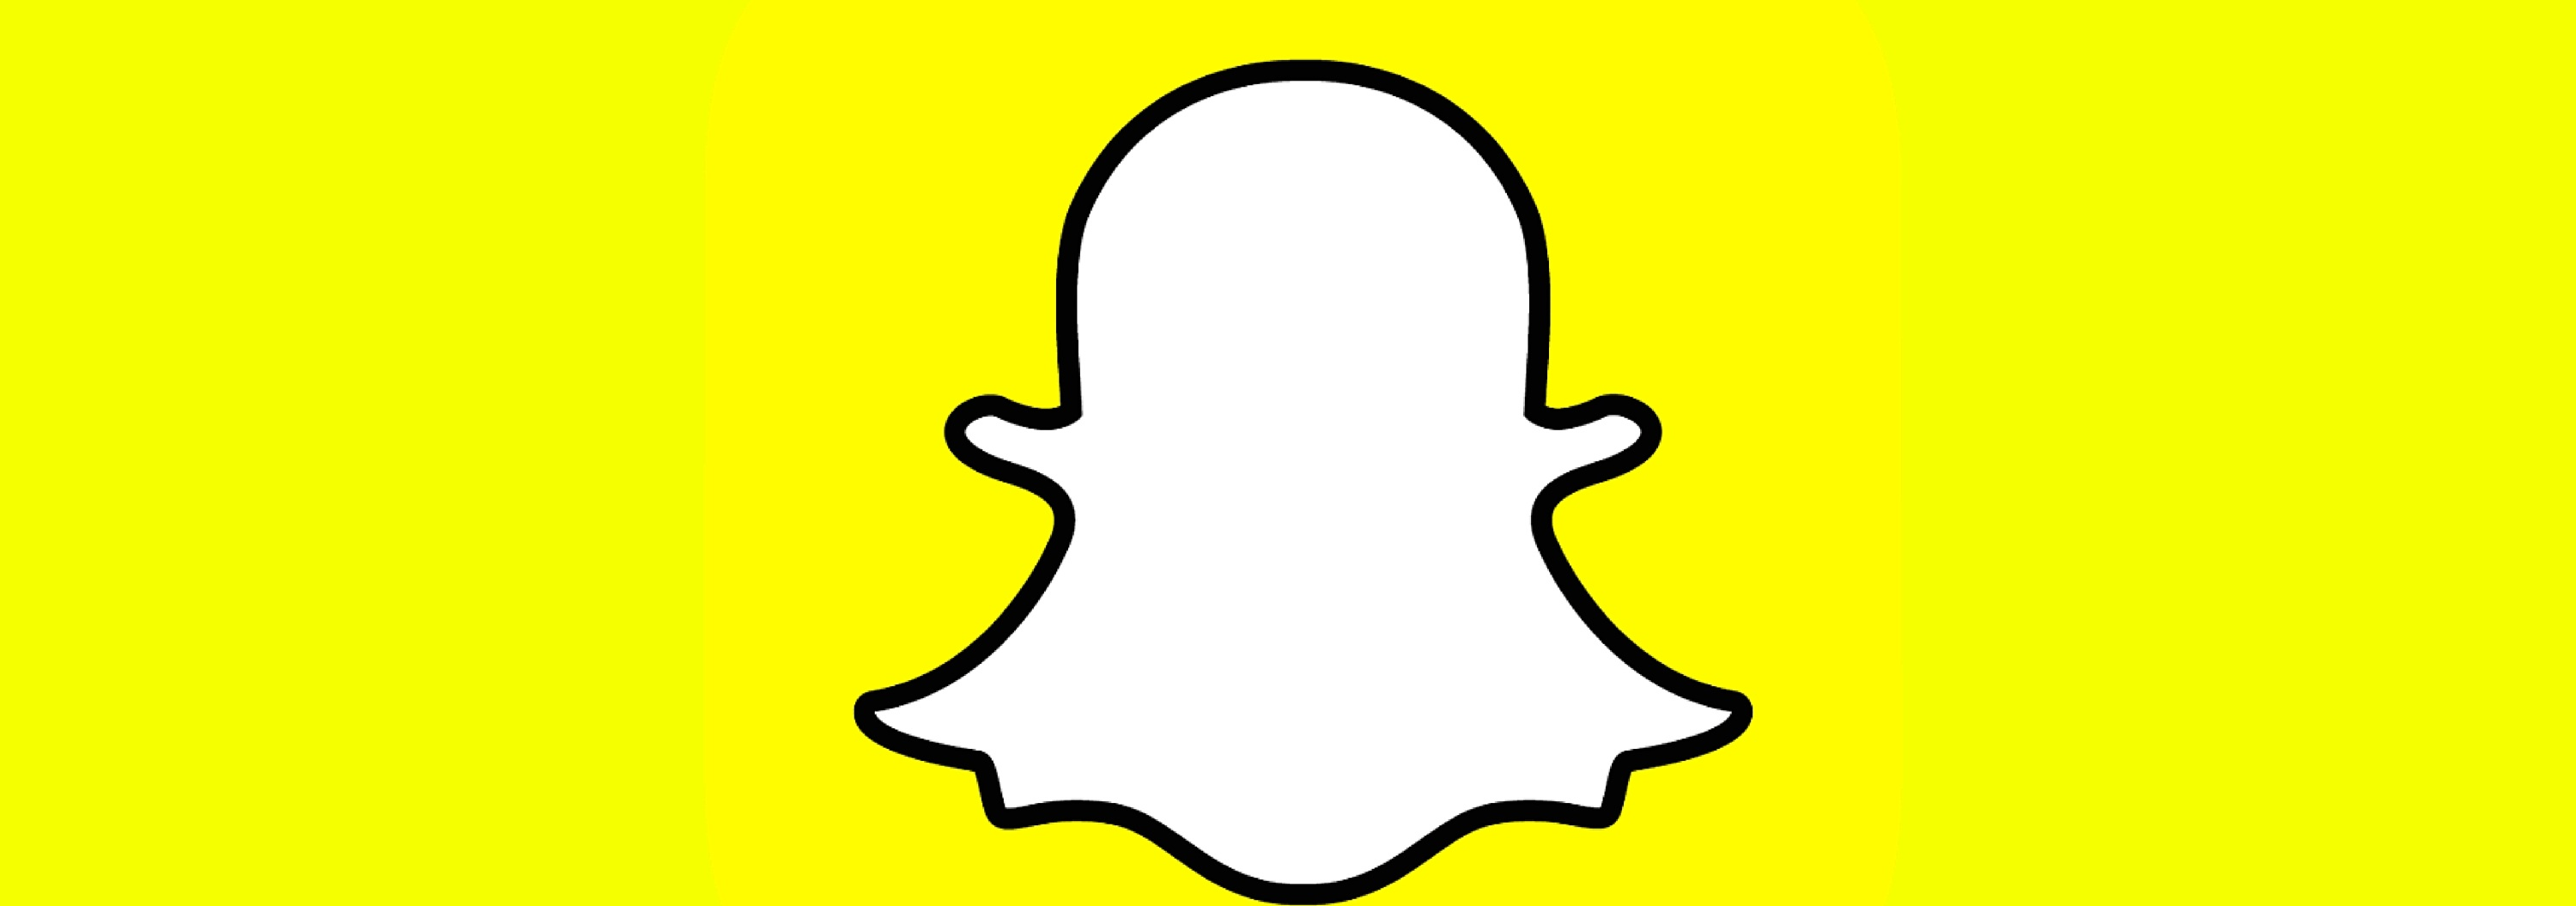 snapchat-1357488 Twitter Loops, Snapchat Ads, and a LinkedIn Redesign – Your Digital Marketing Weekly Roundup